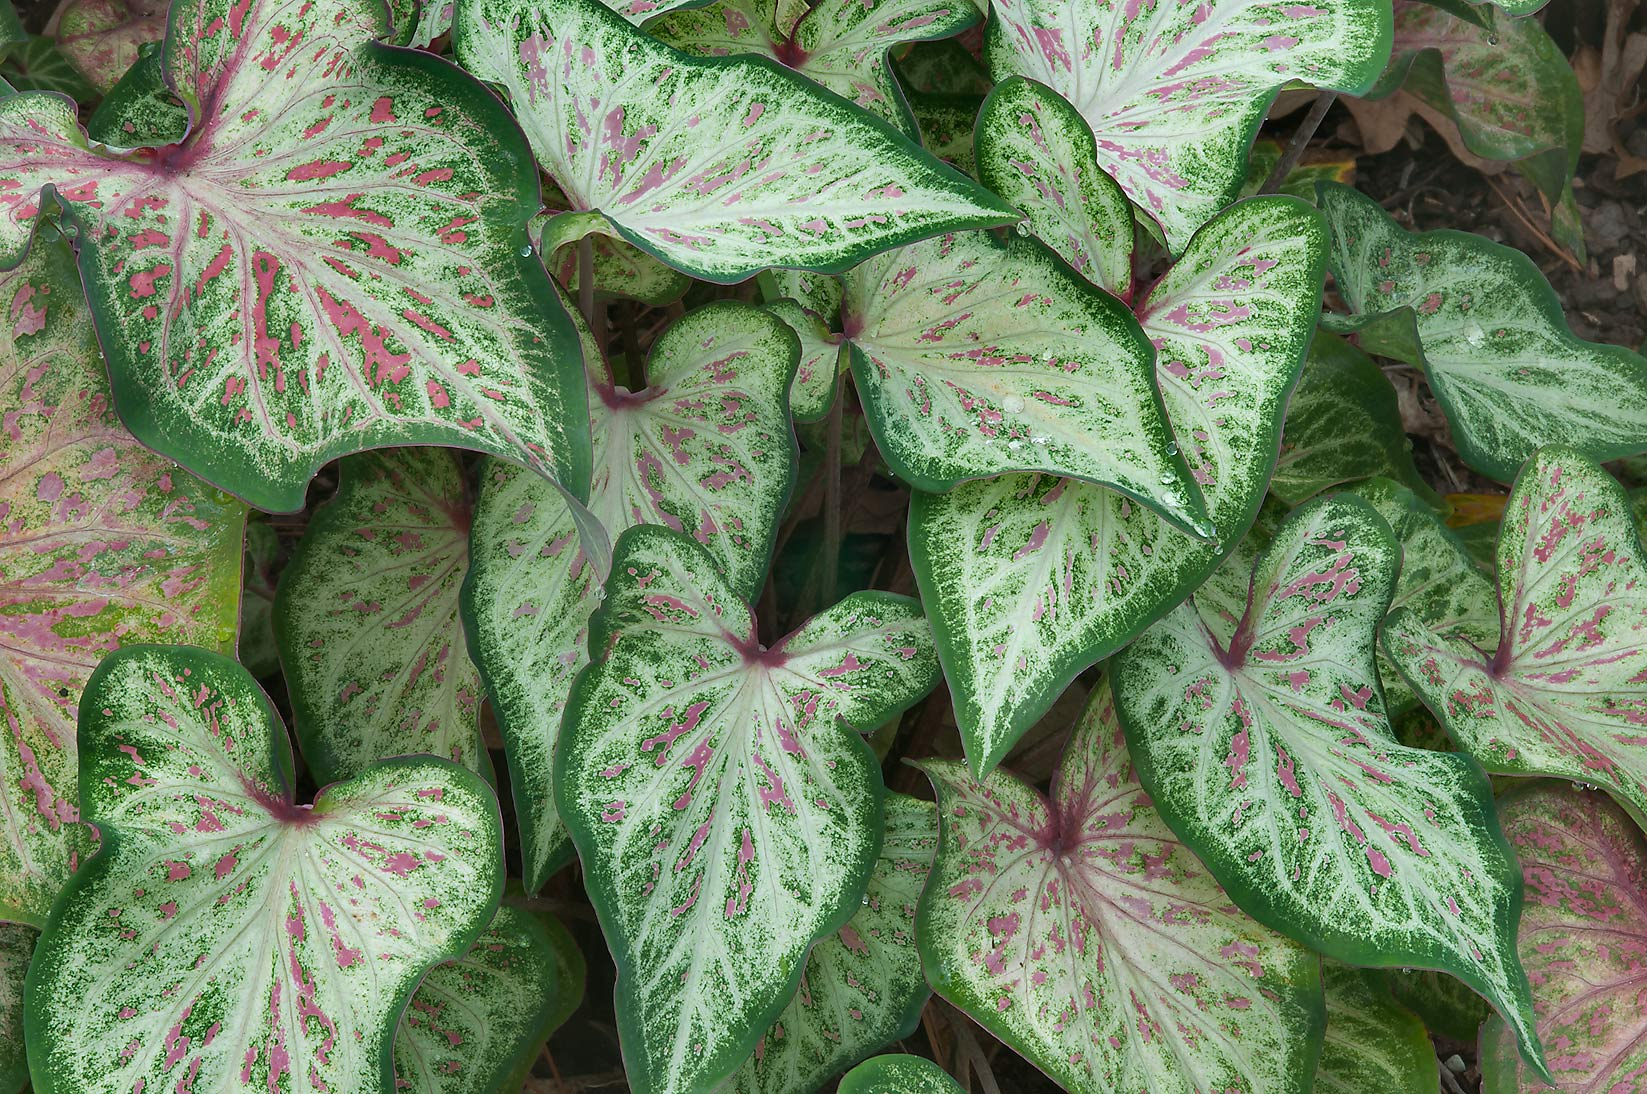 Green and white leaves of caladium in Mercer...Gardens. Humble (Houston area), Texas